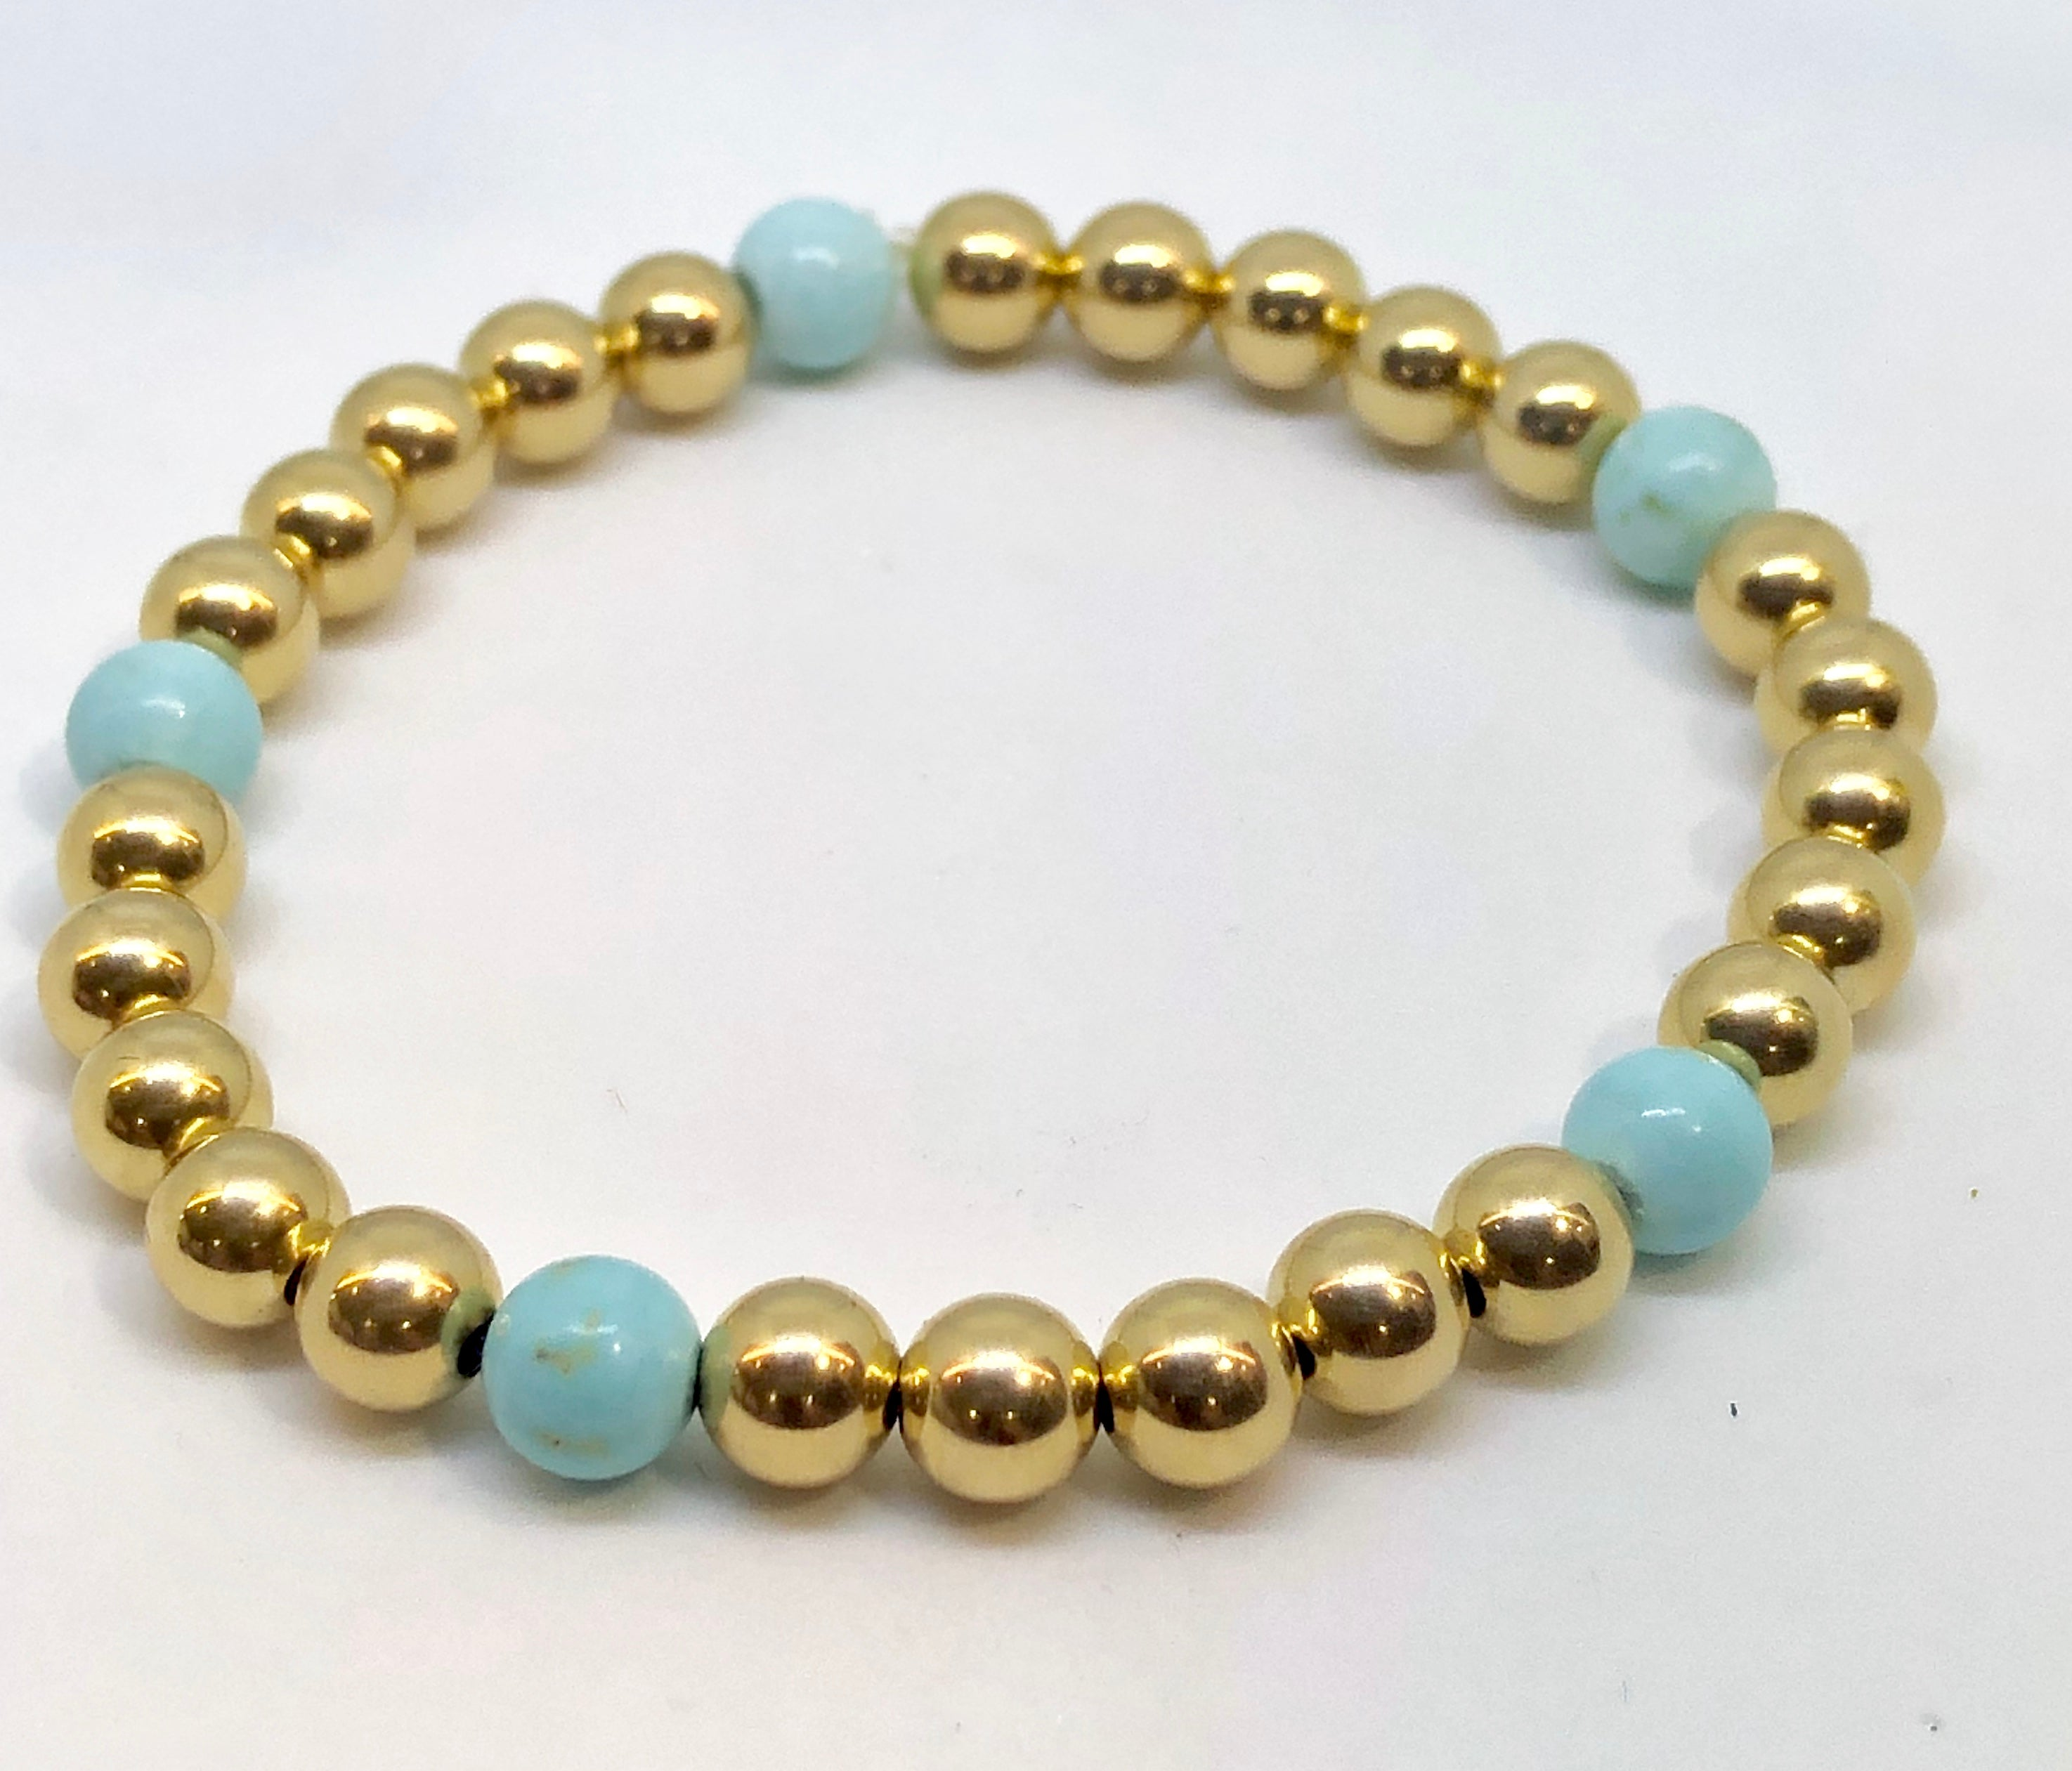 6mm 14kt Gold Filled Bead Bracelet with 5 6mm Round Light Turquoise Beads